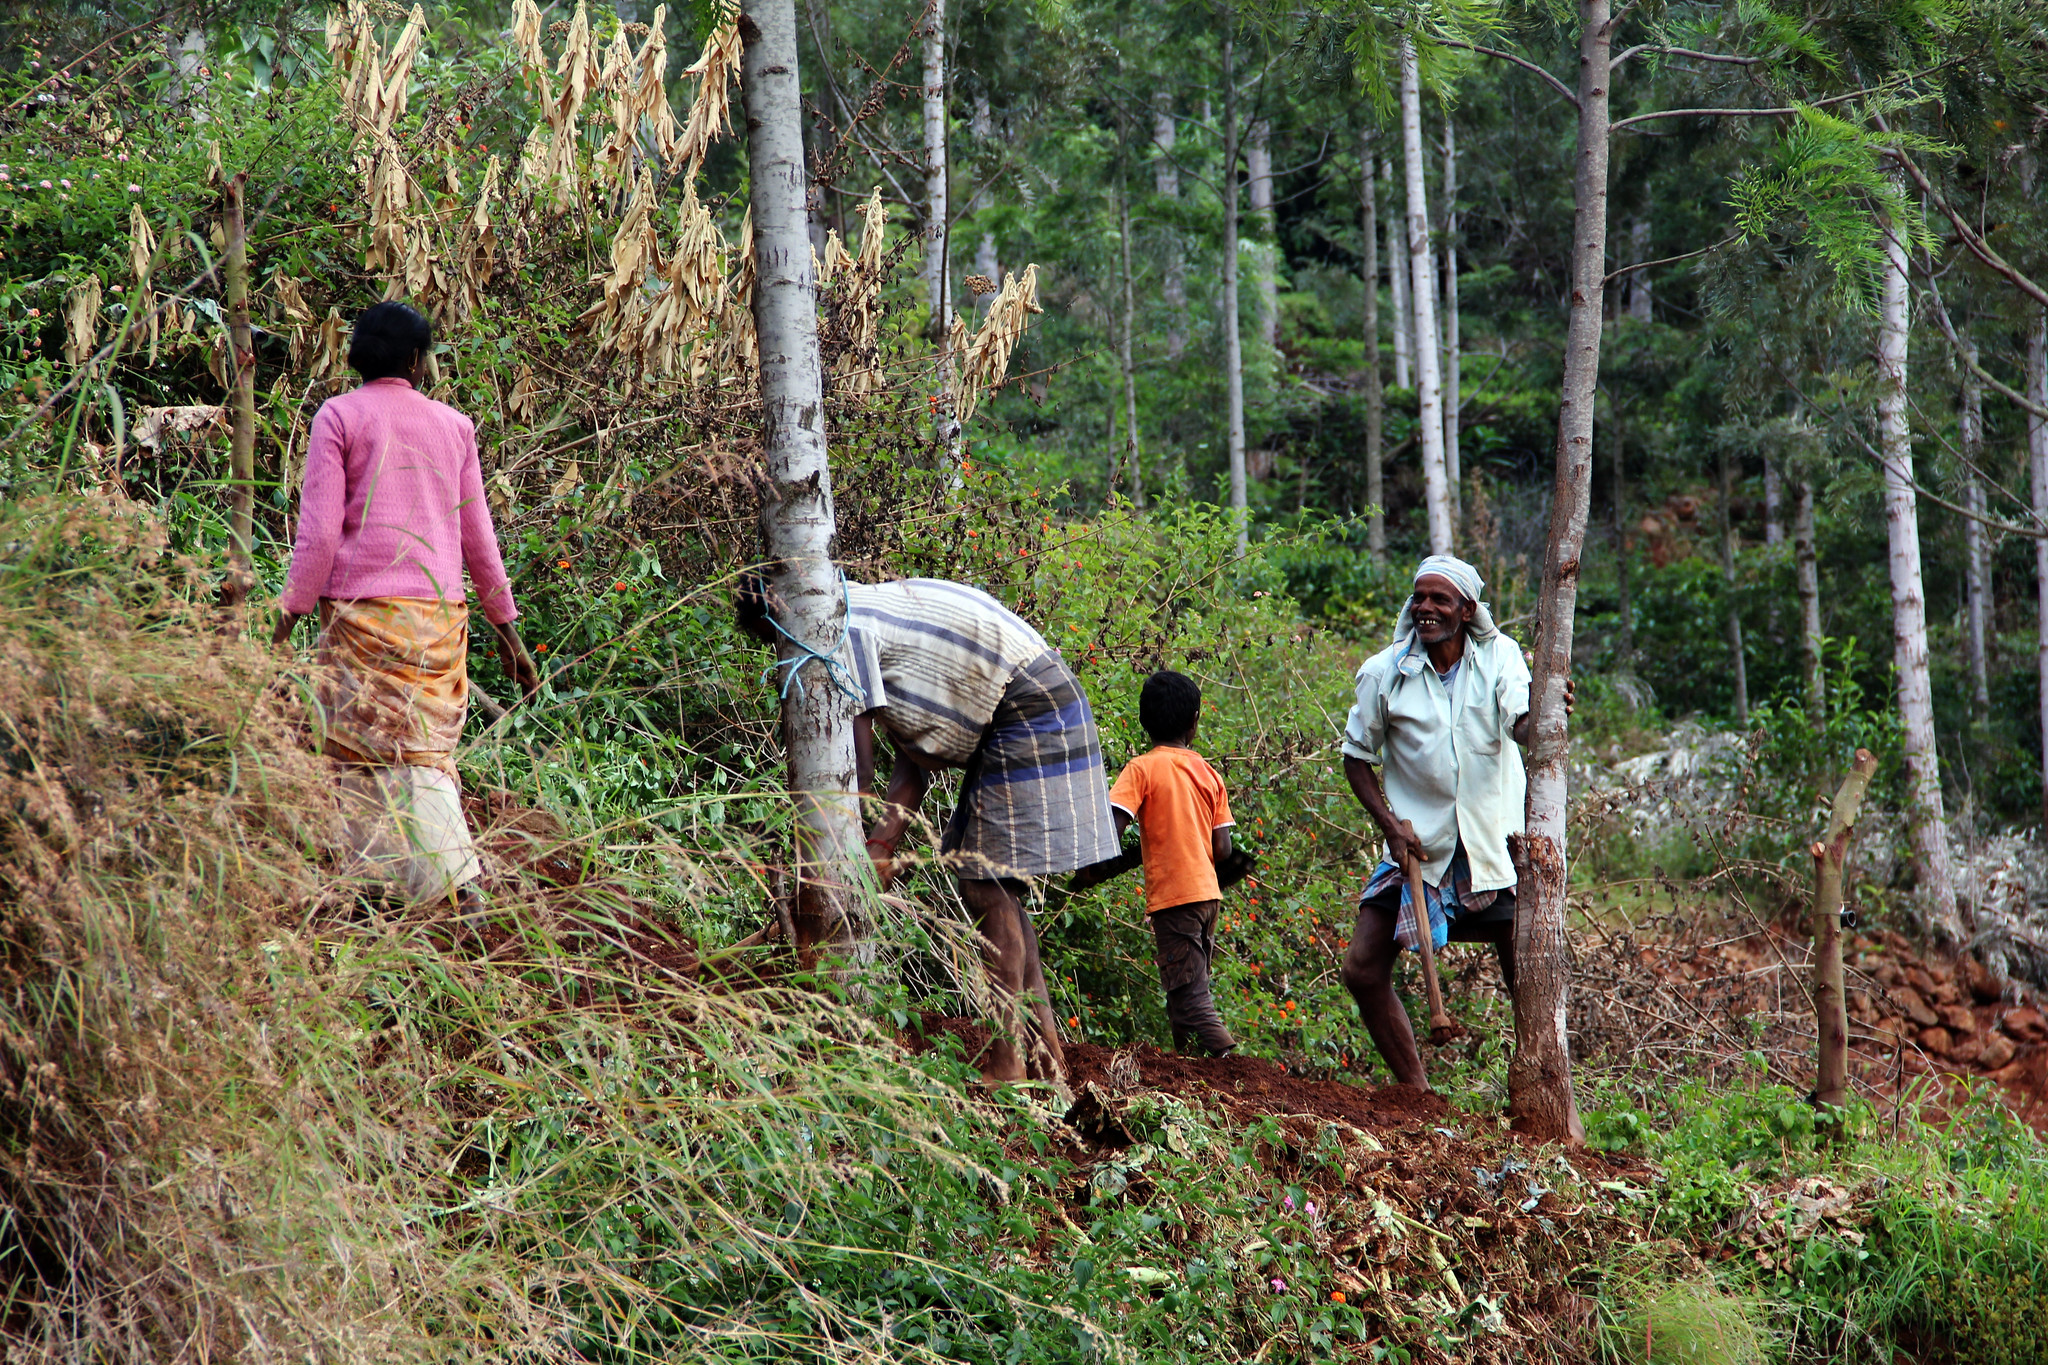 <p>Many rural communities in India practice agroforestry. Photo by James Anderson/WRI</p>